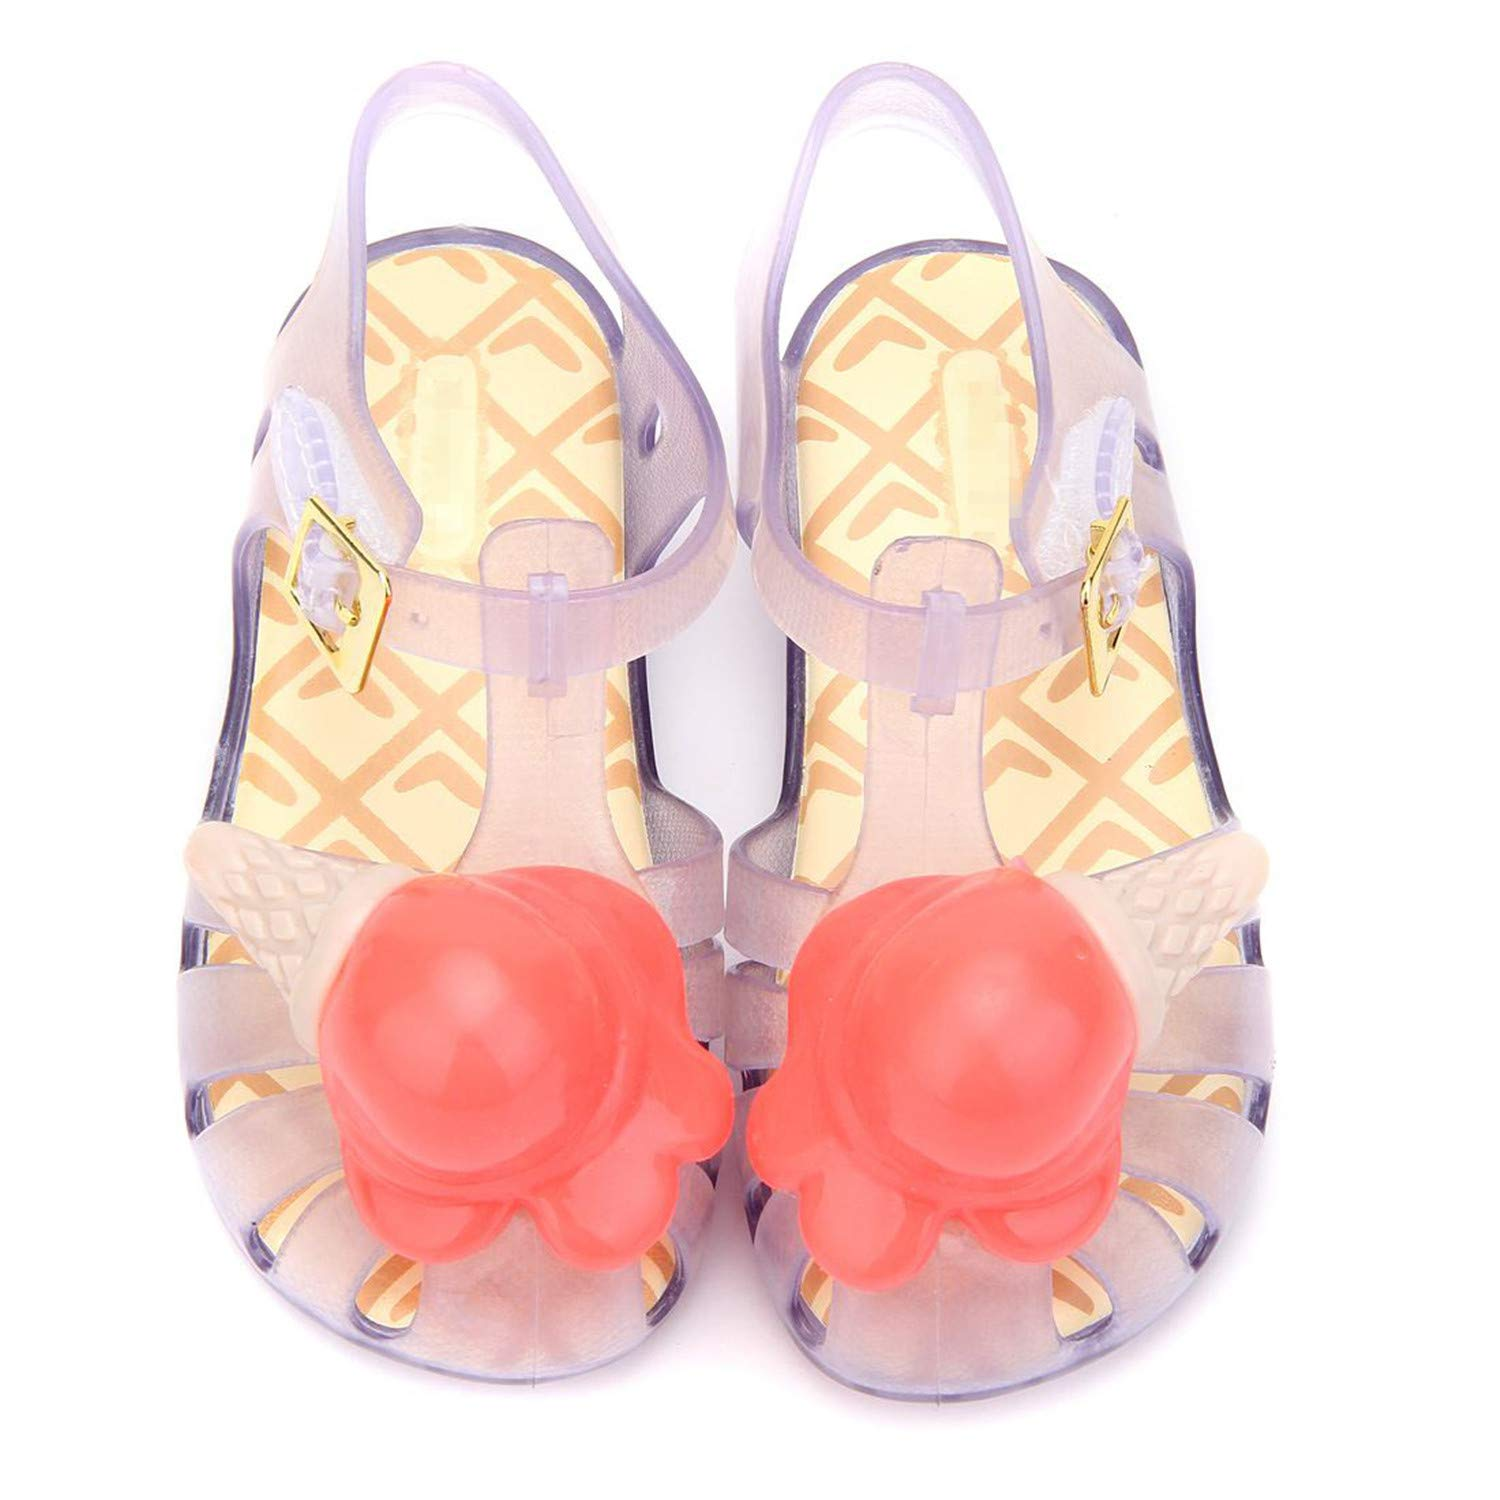 Conch Beach Sandals Mini Kids Flat New Summer Style Girls Sandals Baby Shoes Jelly Shoe